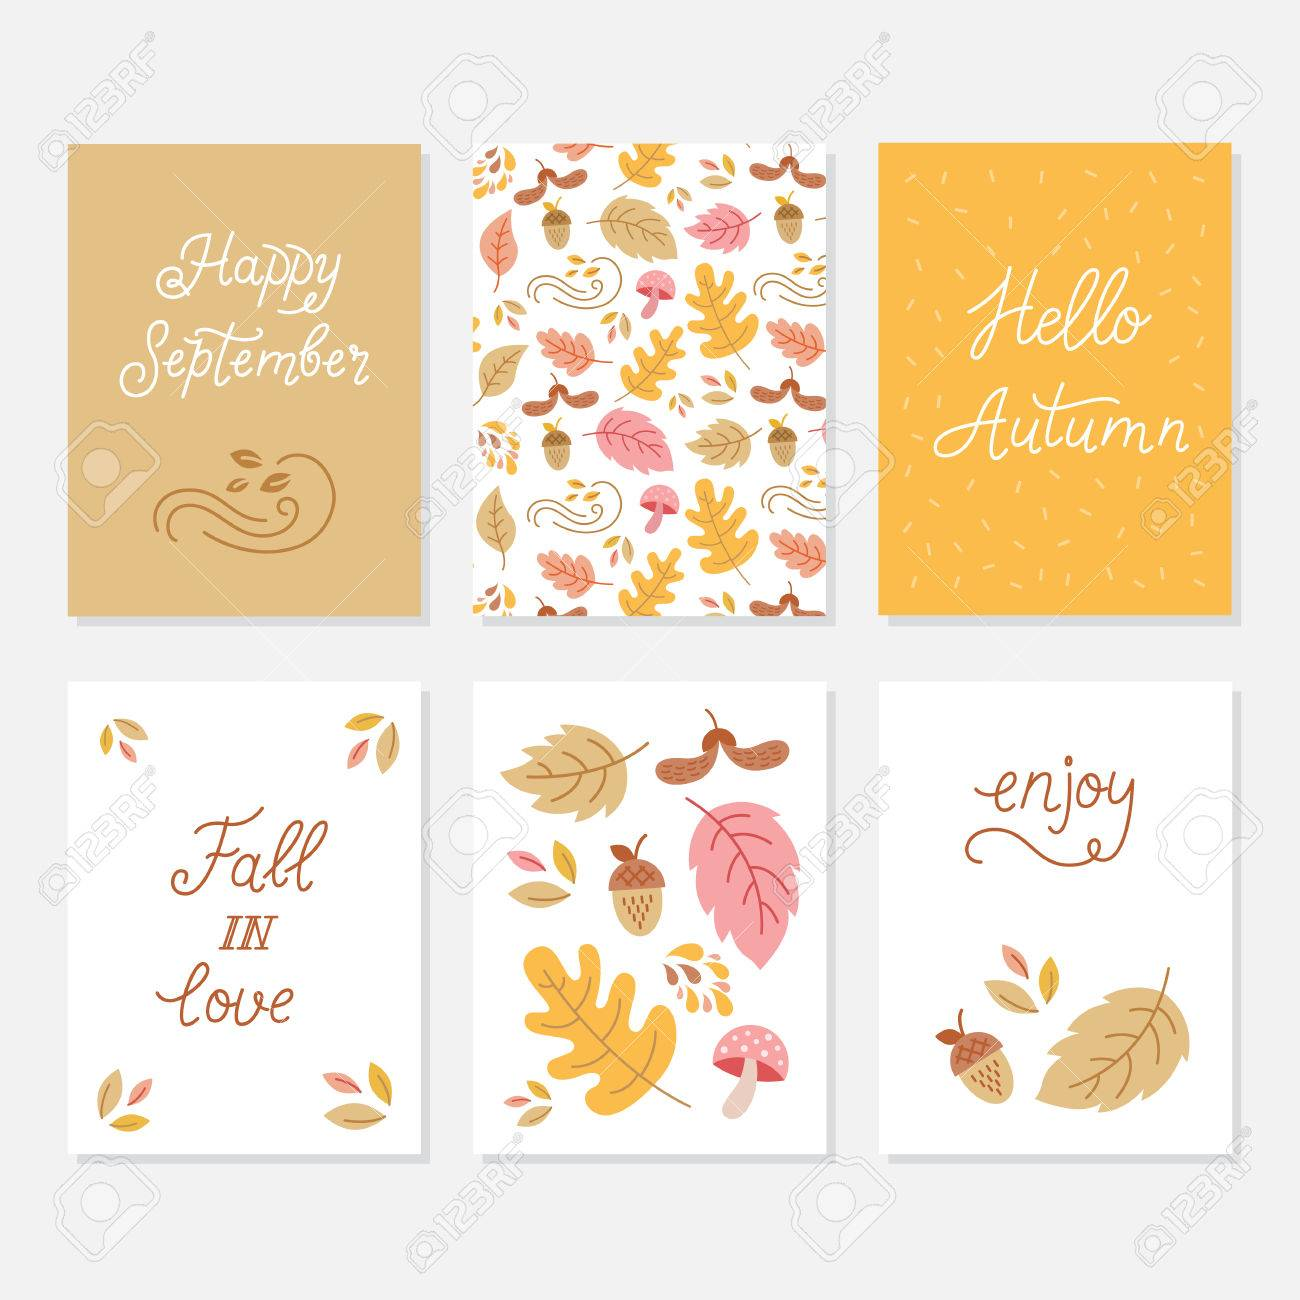 Happy September, Hello Autumn, Fall In Love, Enjoy   Phrases Set. Monoline  Calligraphy Quote Card Collection.